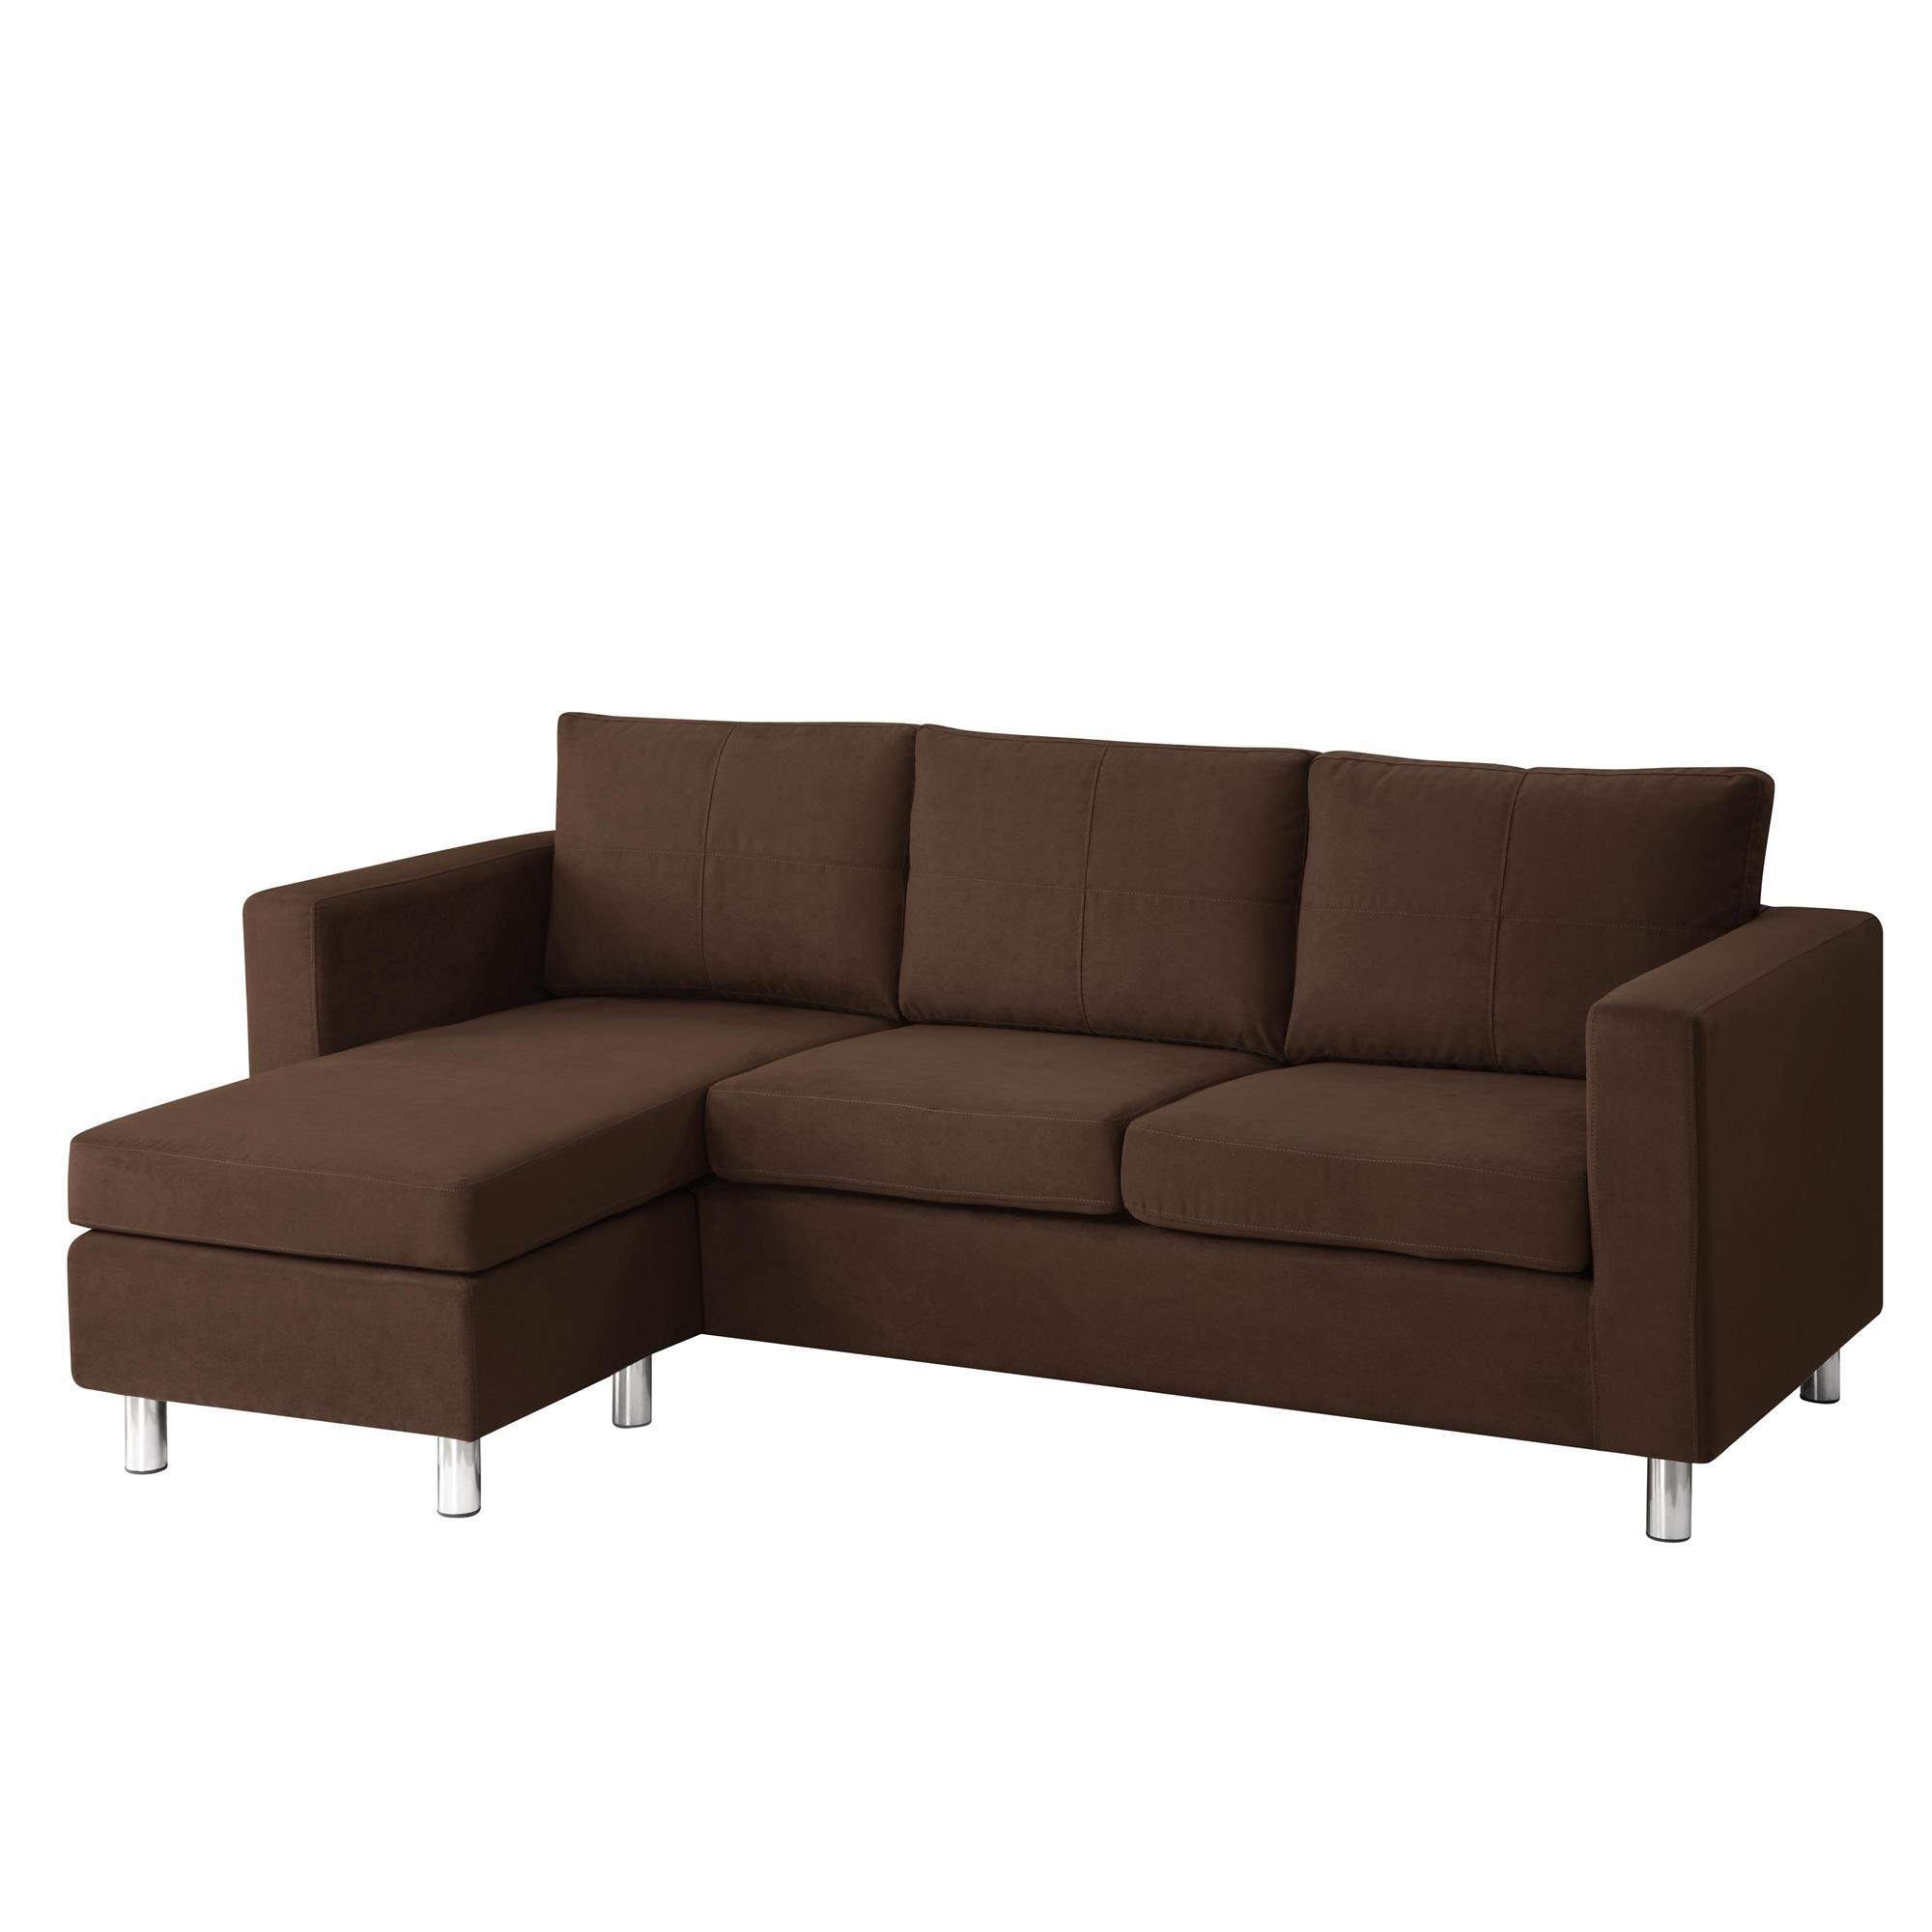 ▻ Sofa : Sss Kimberly Sofa 1 Lovely Small Modern Sectional Sofa Inside Small Modern Sofas (View 5 of 20)